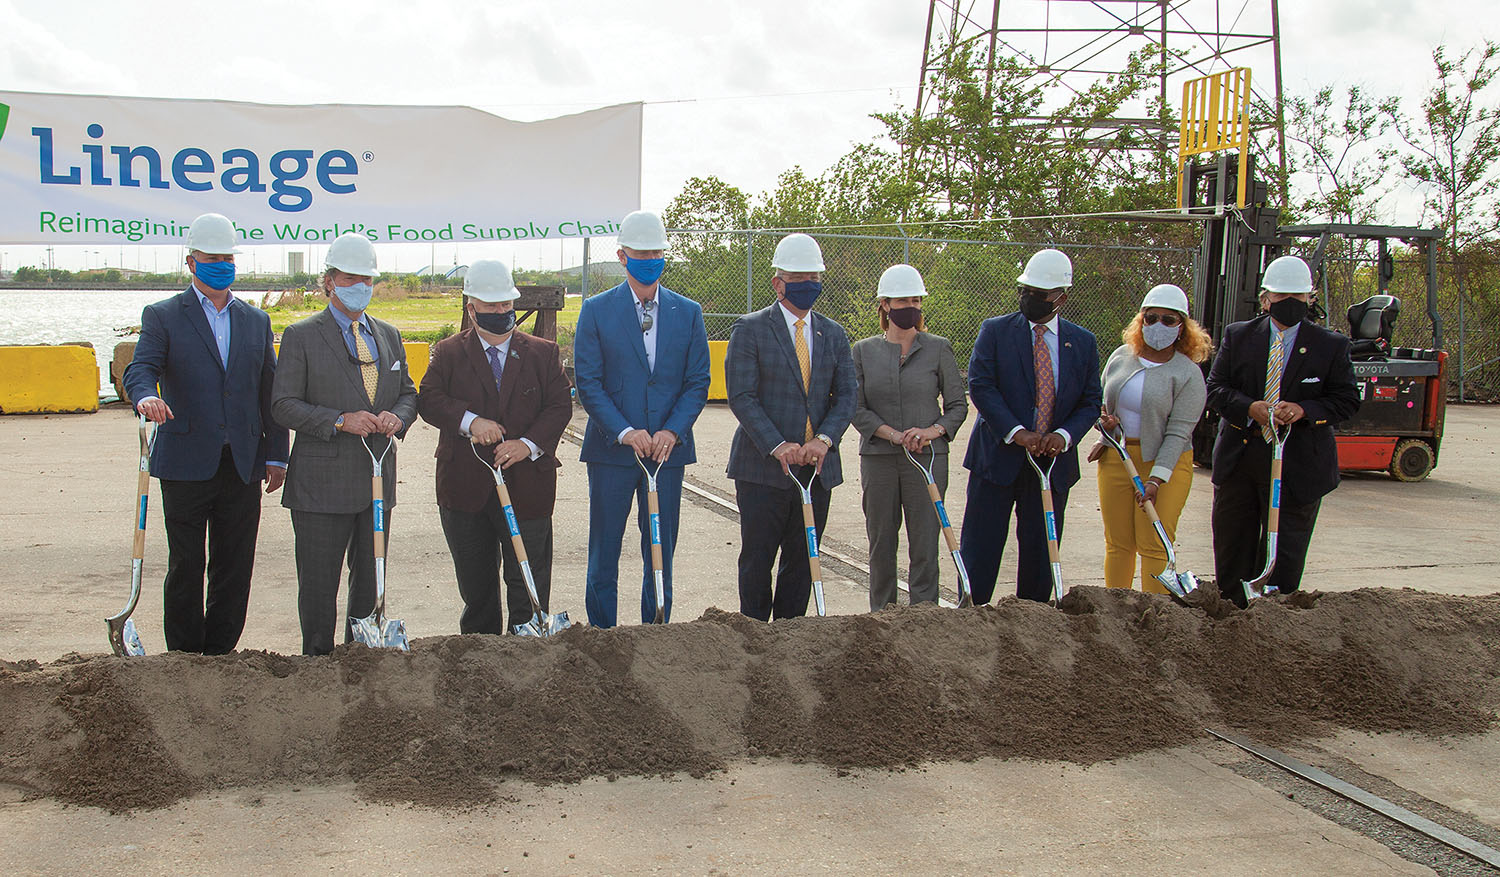 Officials—including Louisiana Gov. John Bel Edwards and Port NOLA President and CEO Brandy Christian, center—break ground April 6 for the $42 million expansion project. (Photo by Frank McCormack)